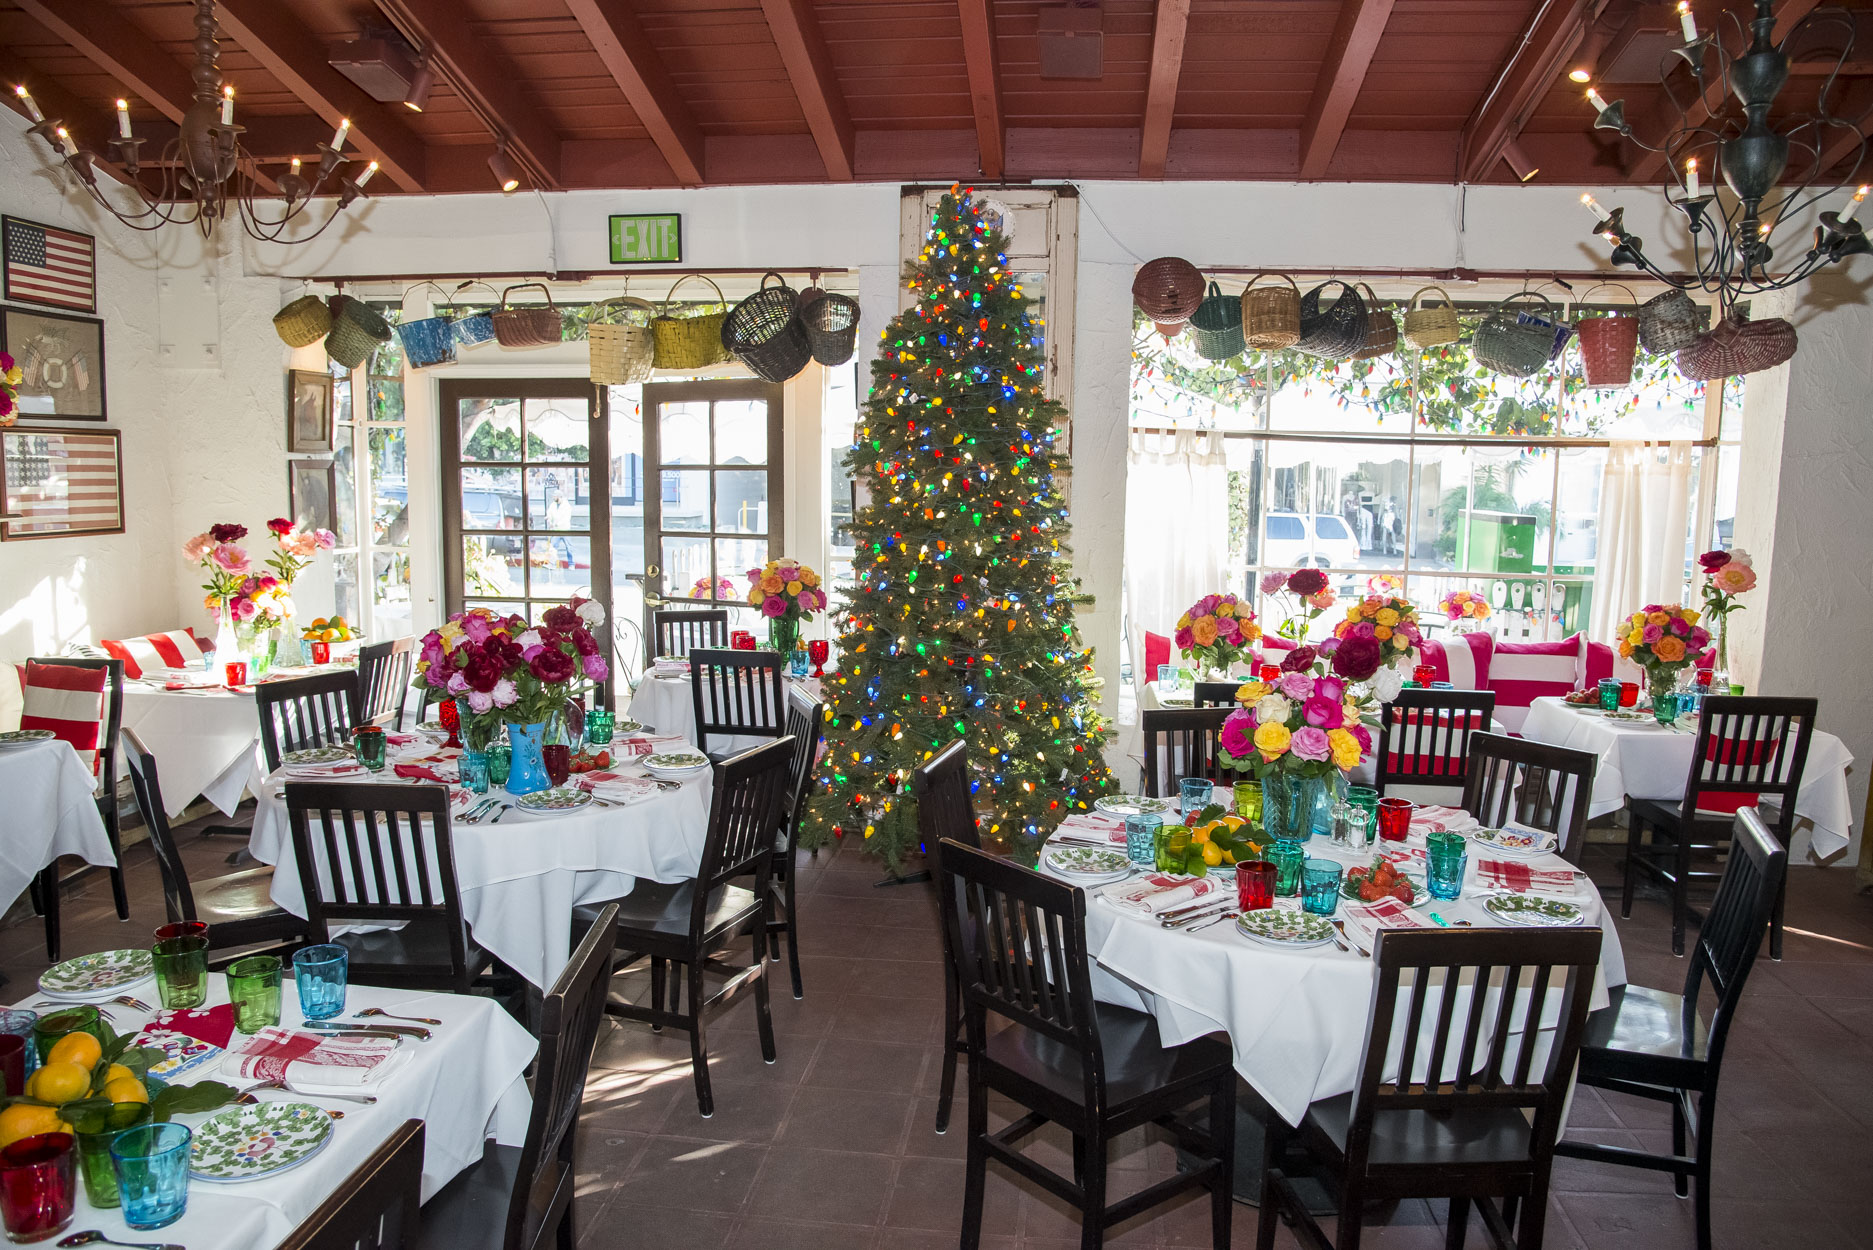 The Ivy Restaurant interior with a Christmas tree, colorful antique basquets hanging over the 